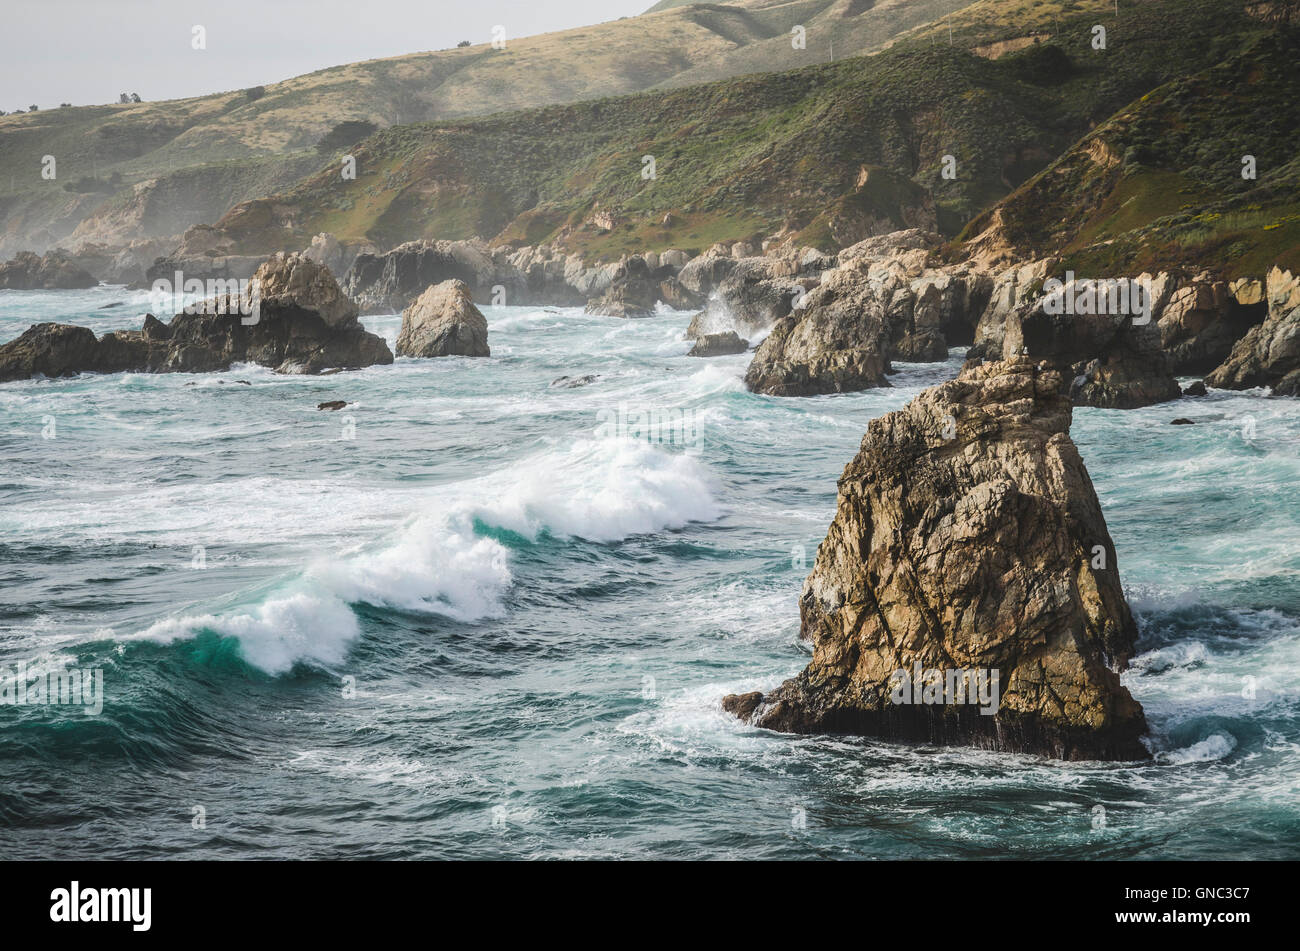 Jagged Rock Formations and Ocean Waves, Soberanes Point, Garrapata State Park, California, USA Stock Photo